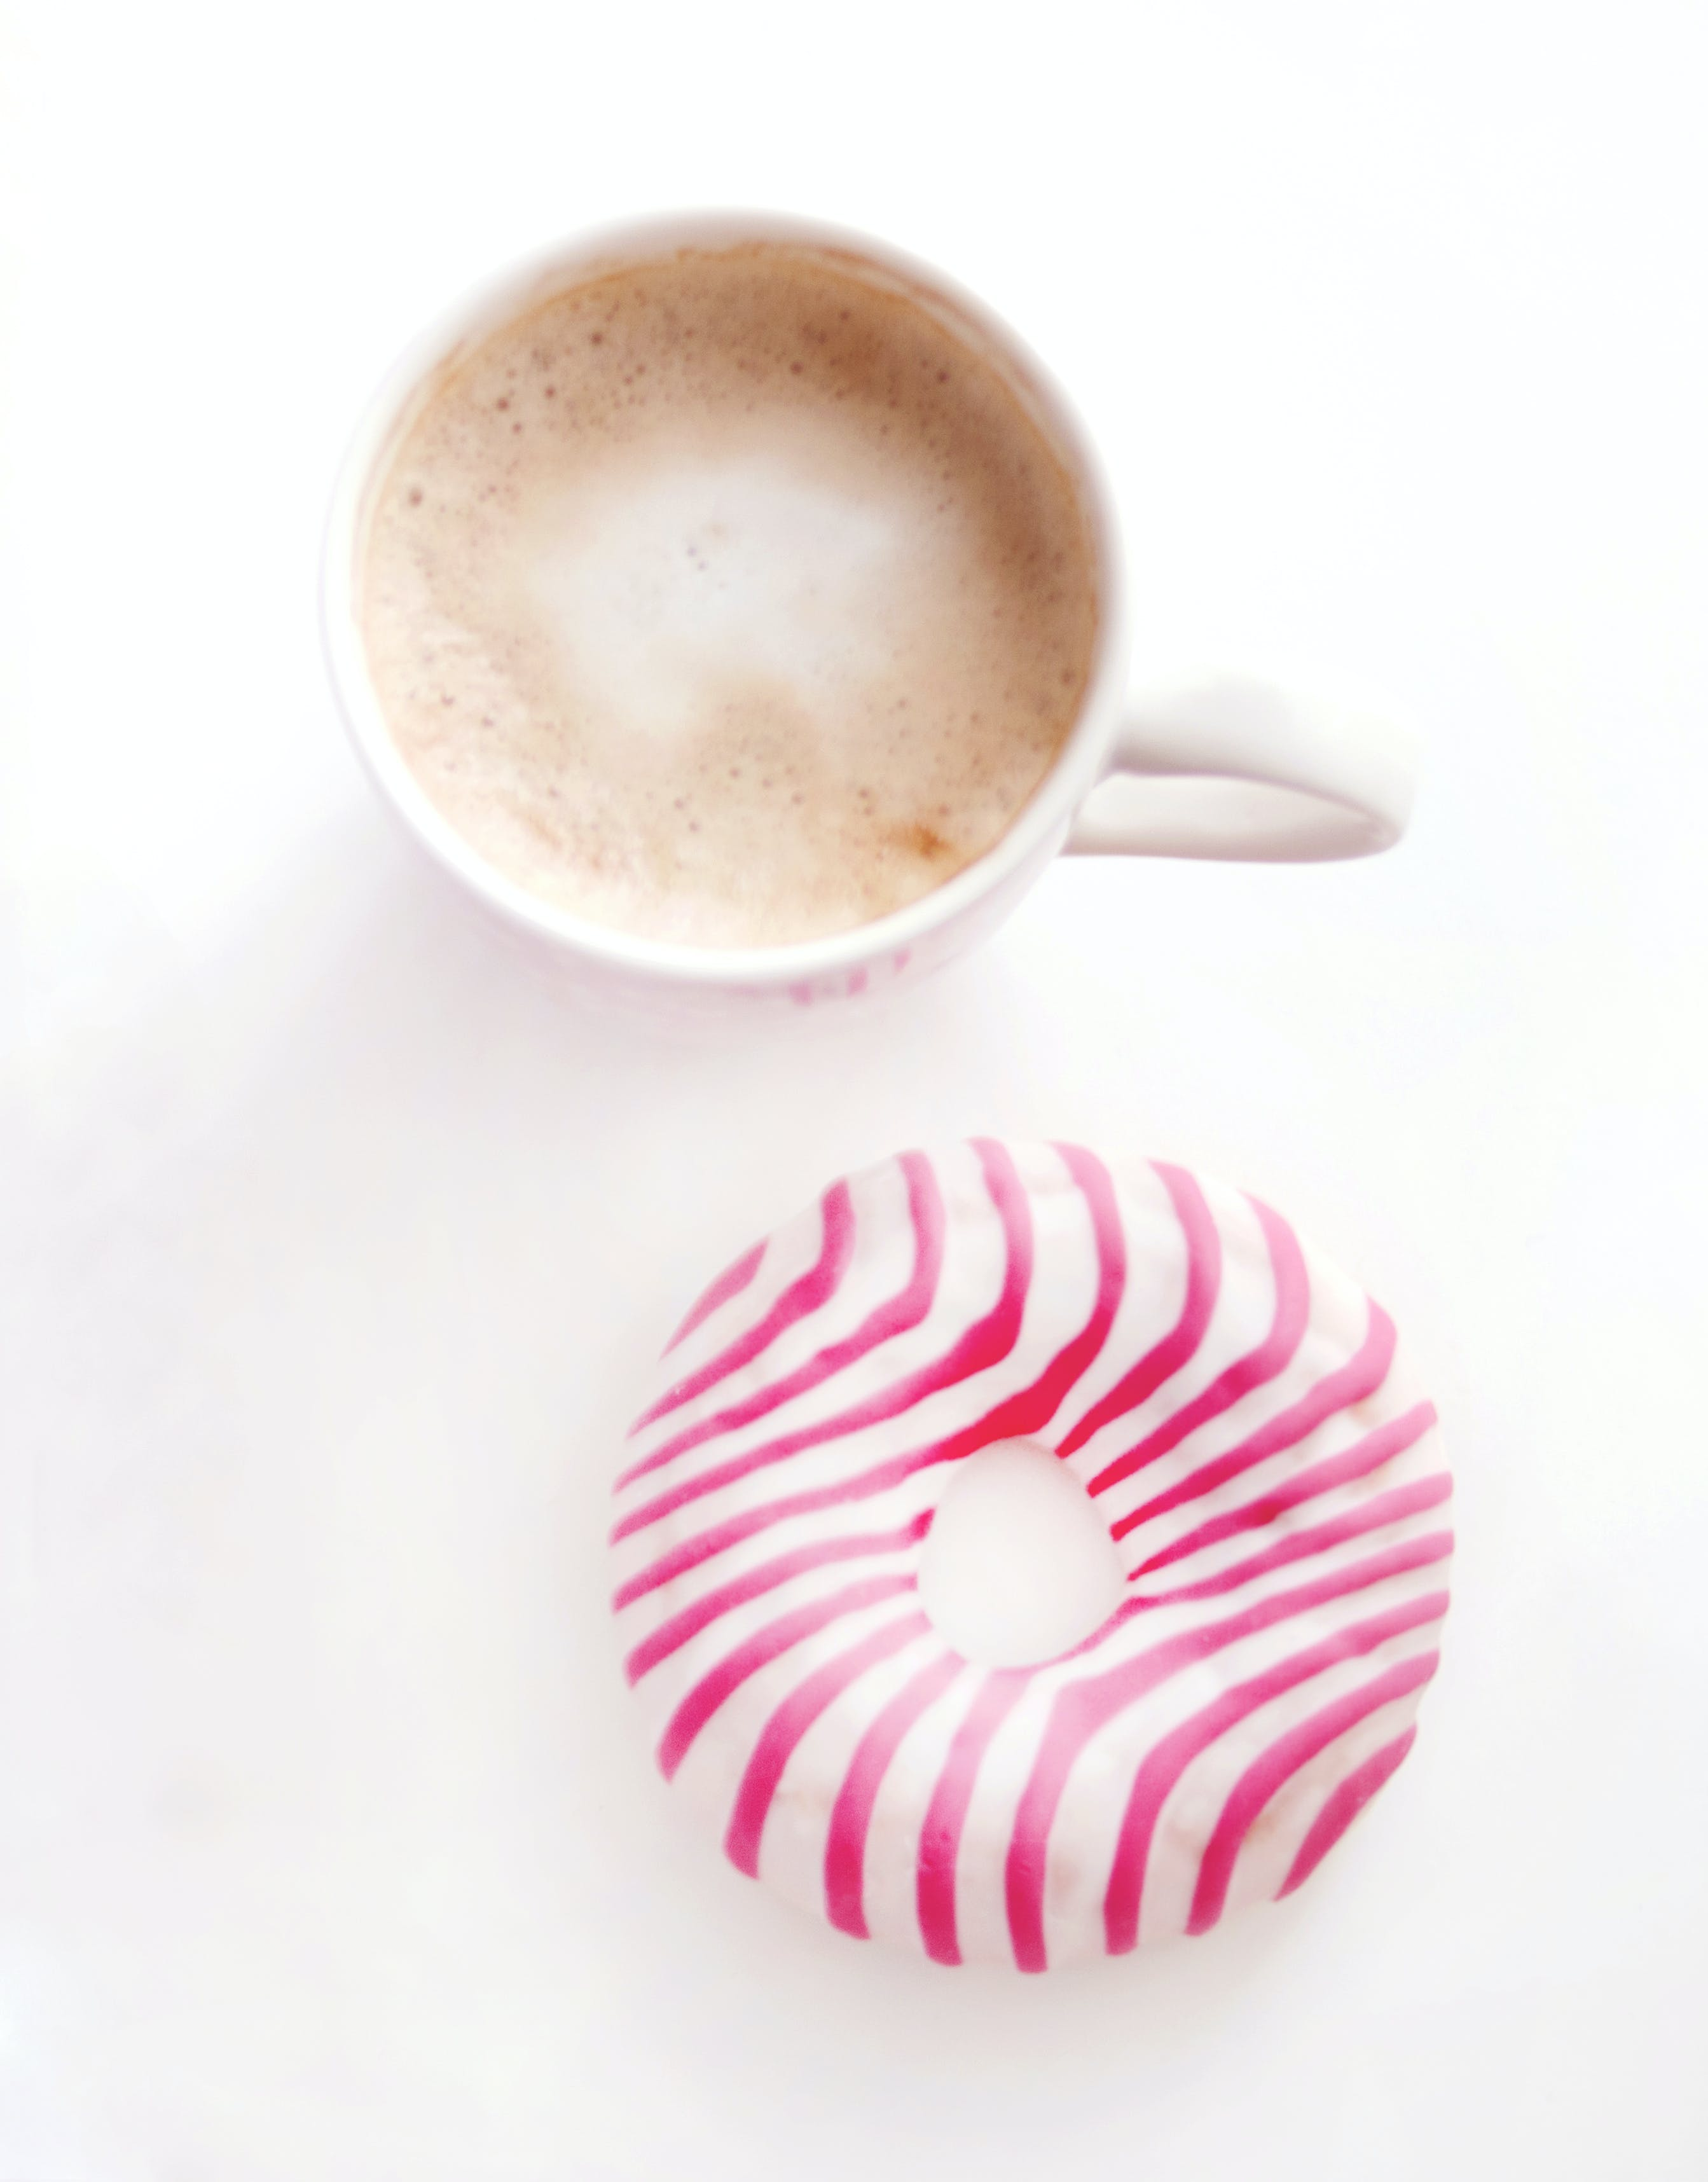 Free stock photo of coffee, cup, pink, donut